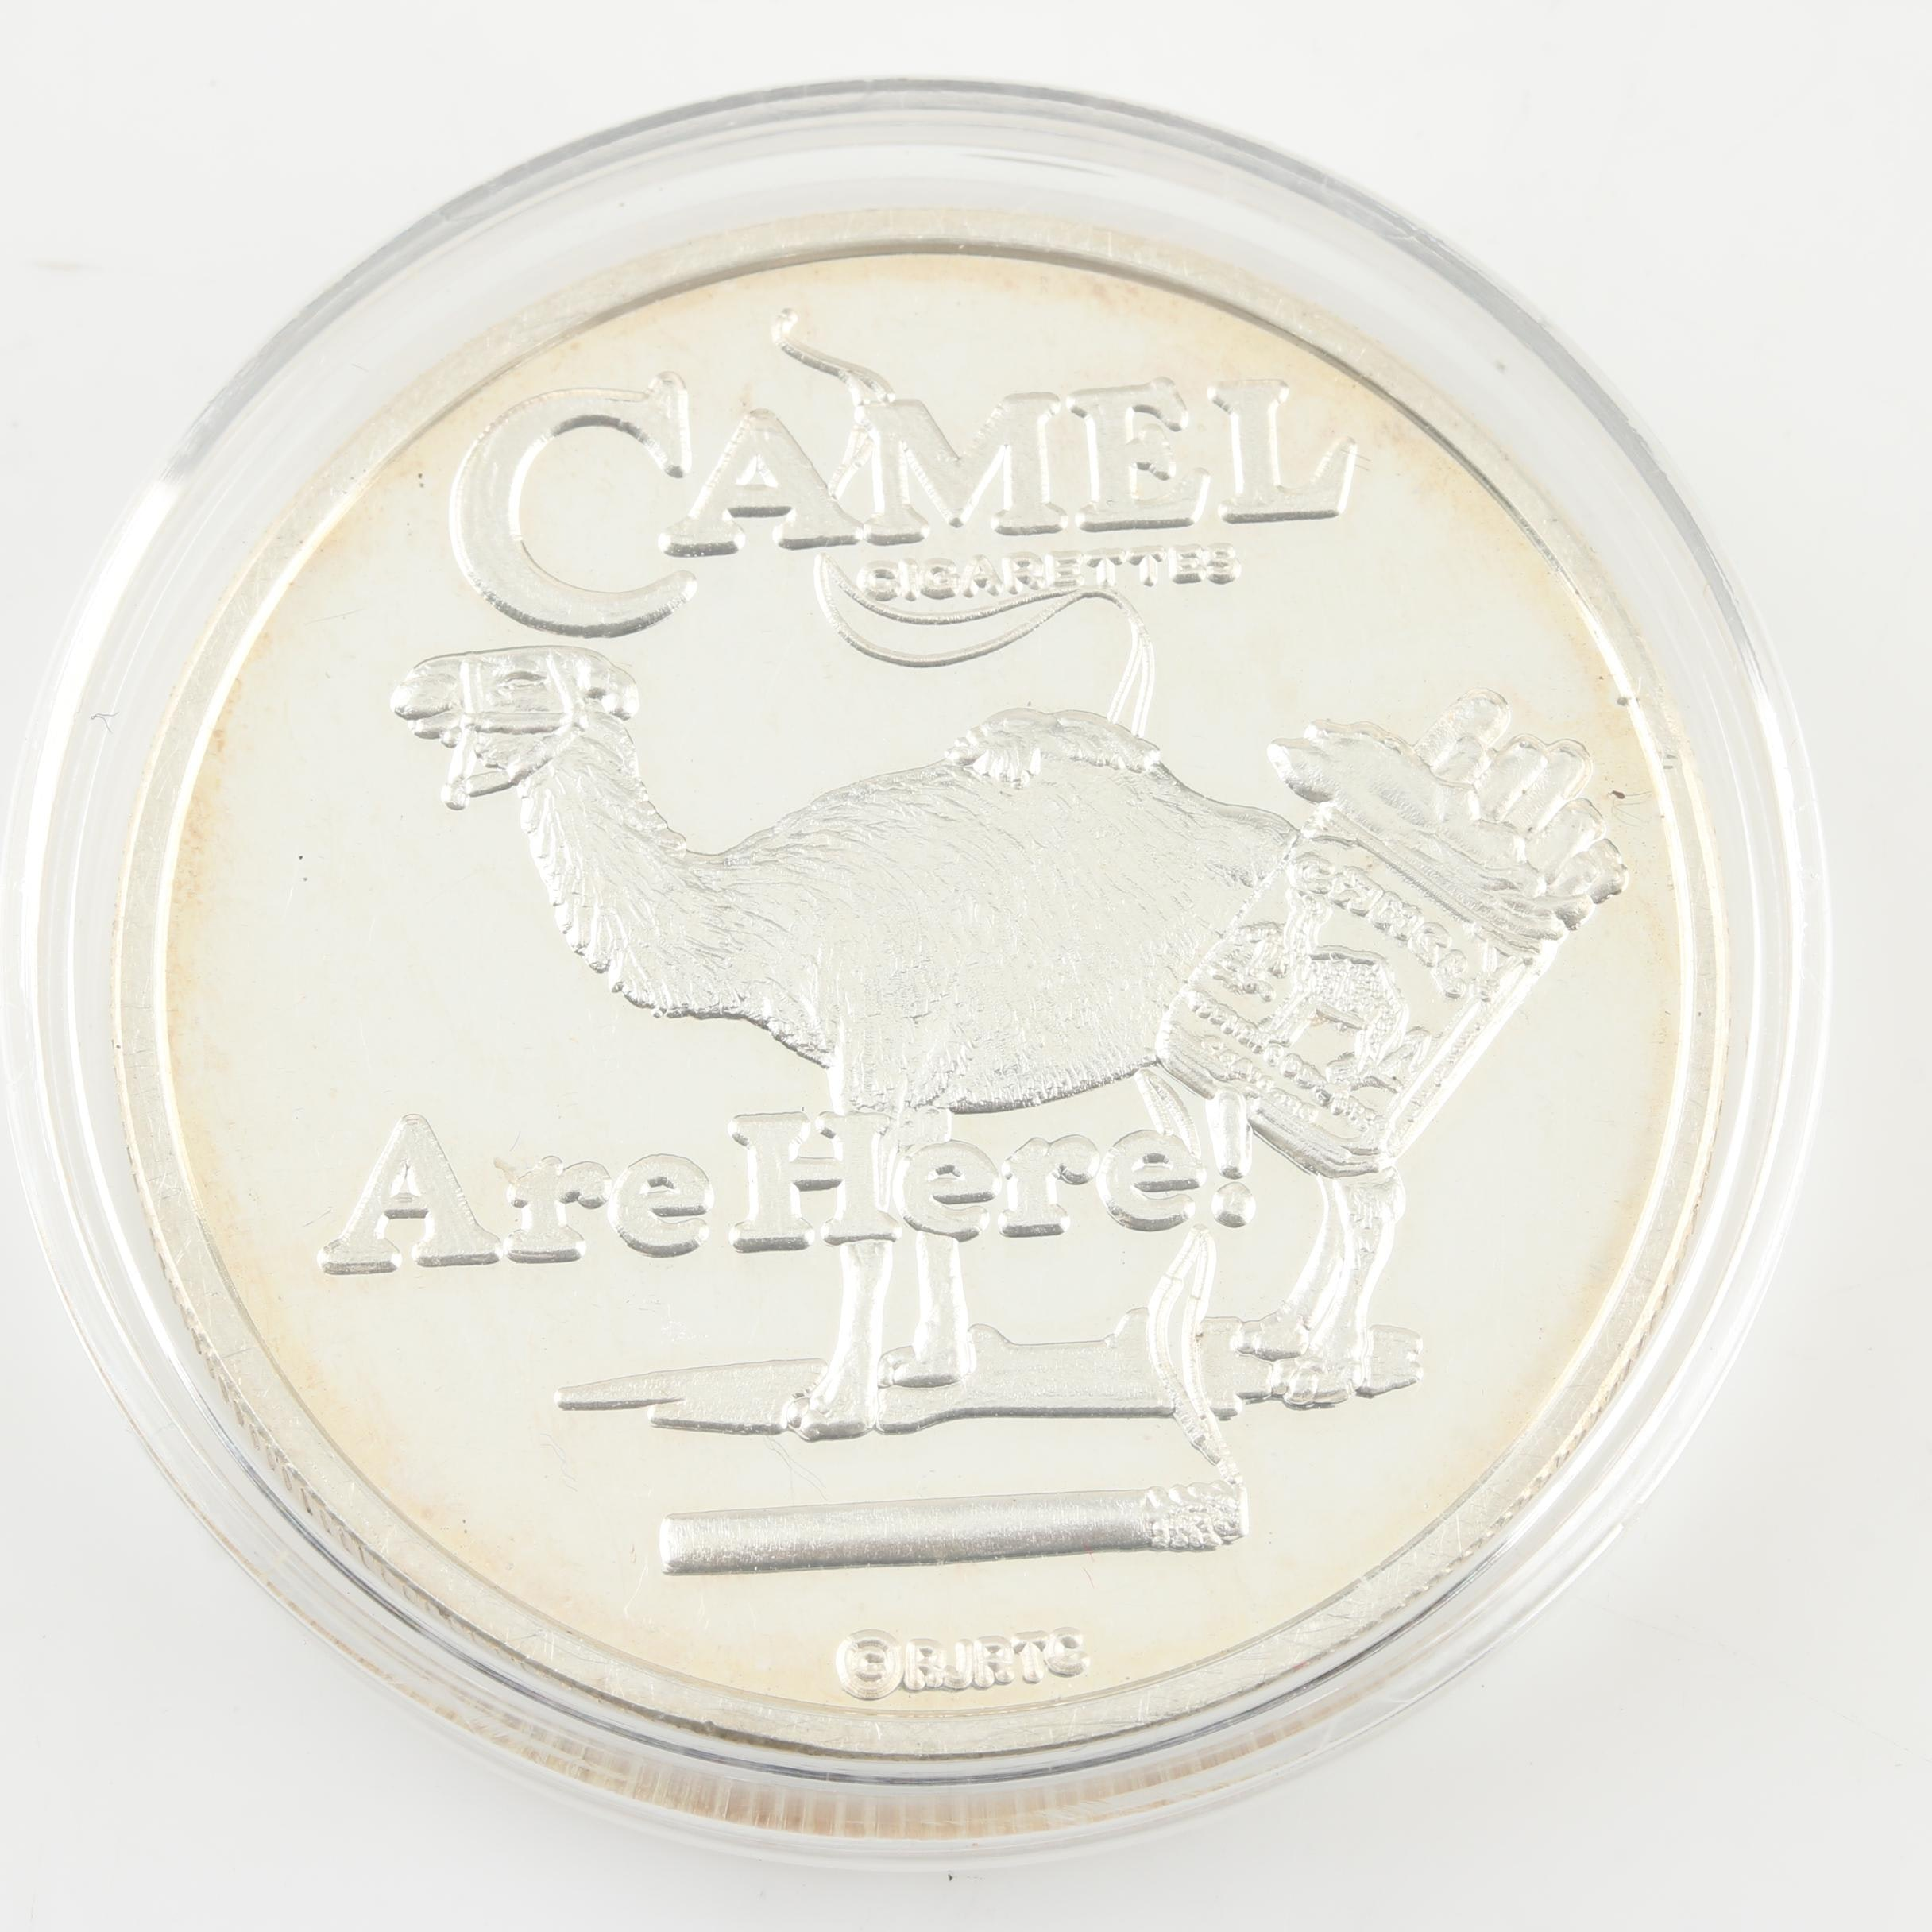 Camel Cigarettes 1-Ounce Proof Silver Round